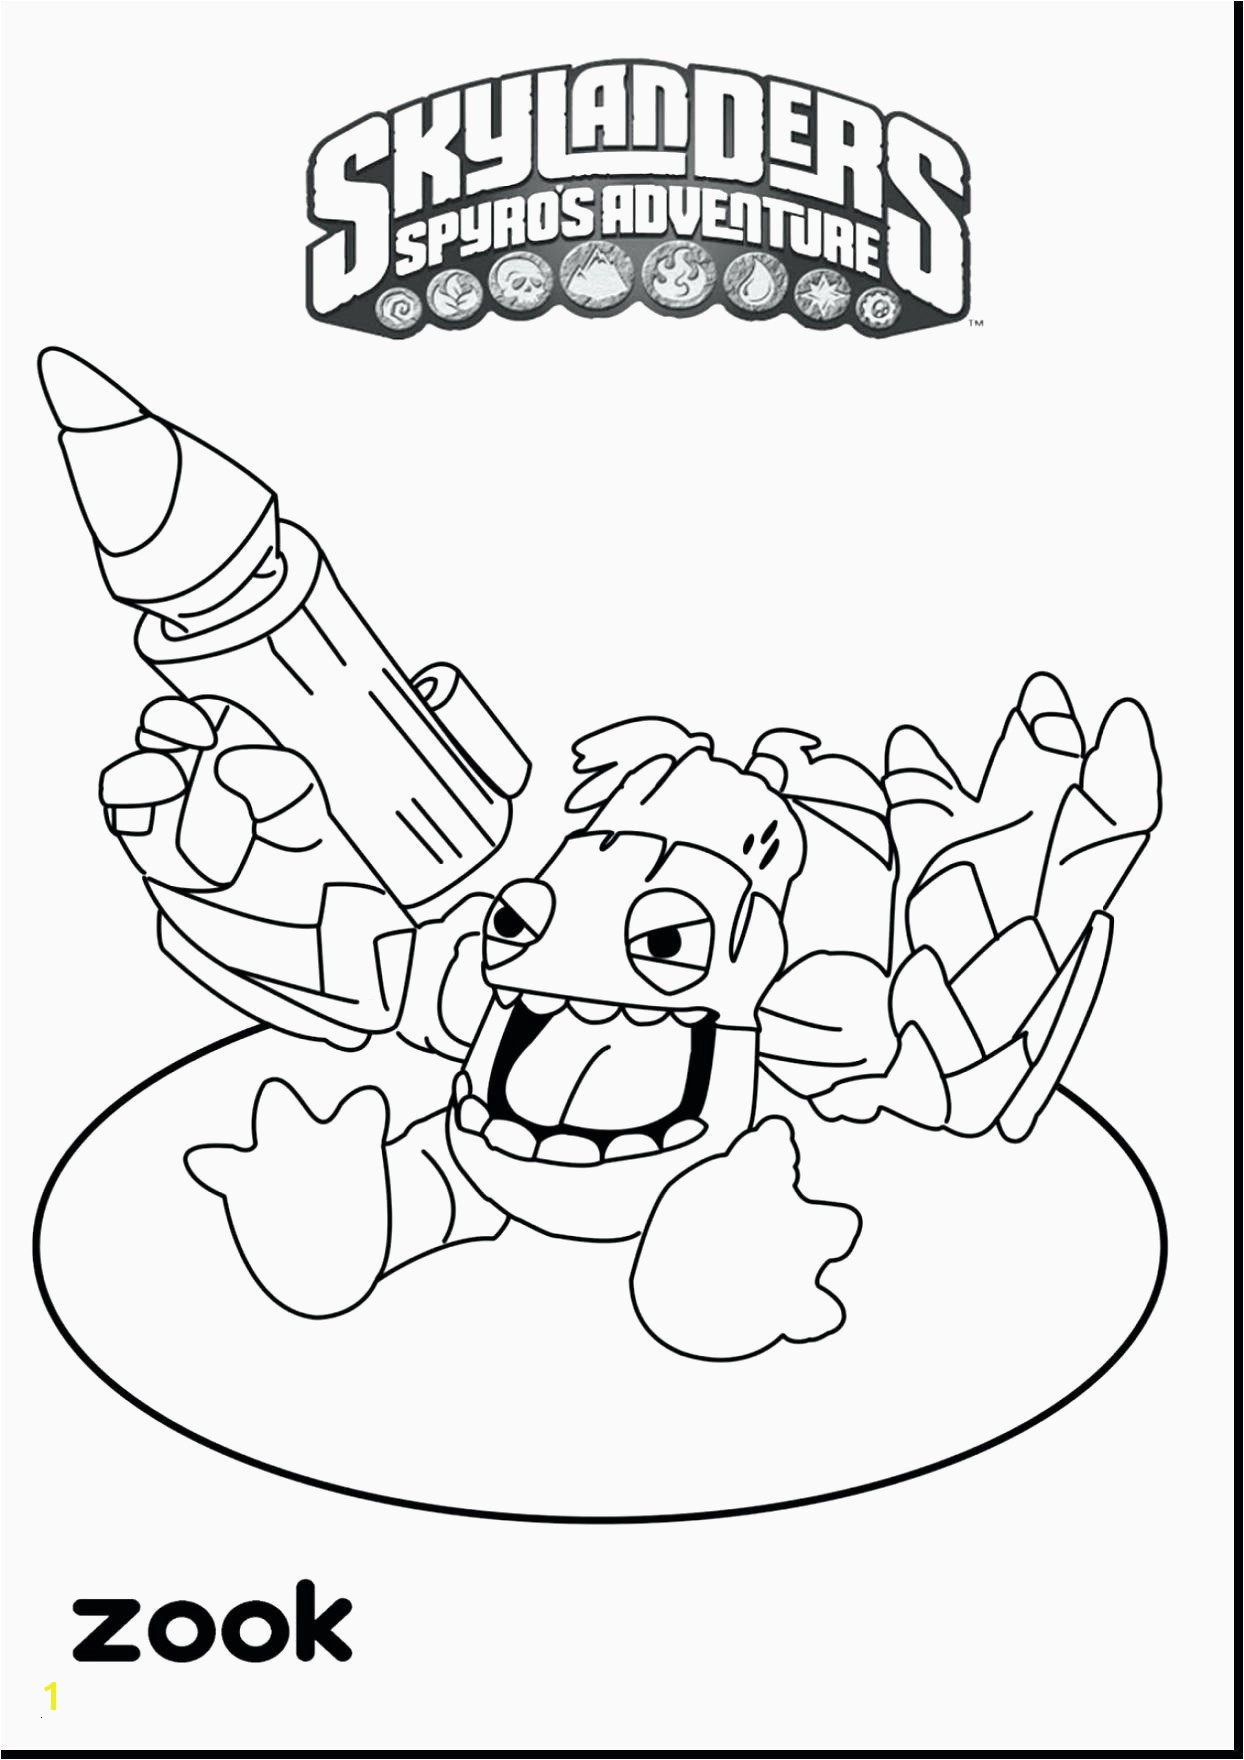 Easy Coloring Pages for Boys Free Sports Coloring Pages Unique Coloring Book Print 21csb Cloud9vegas